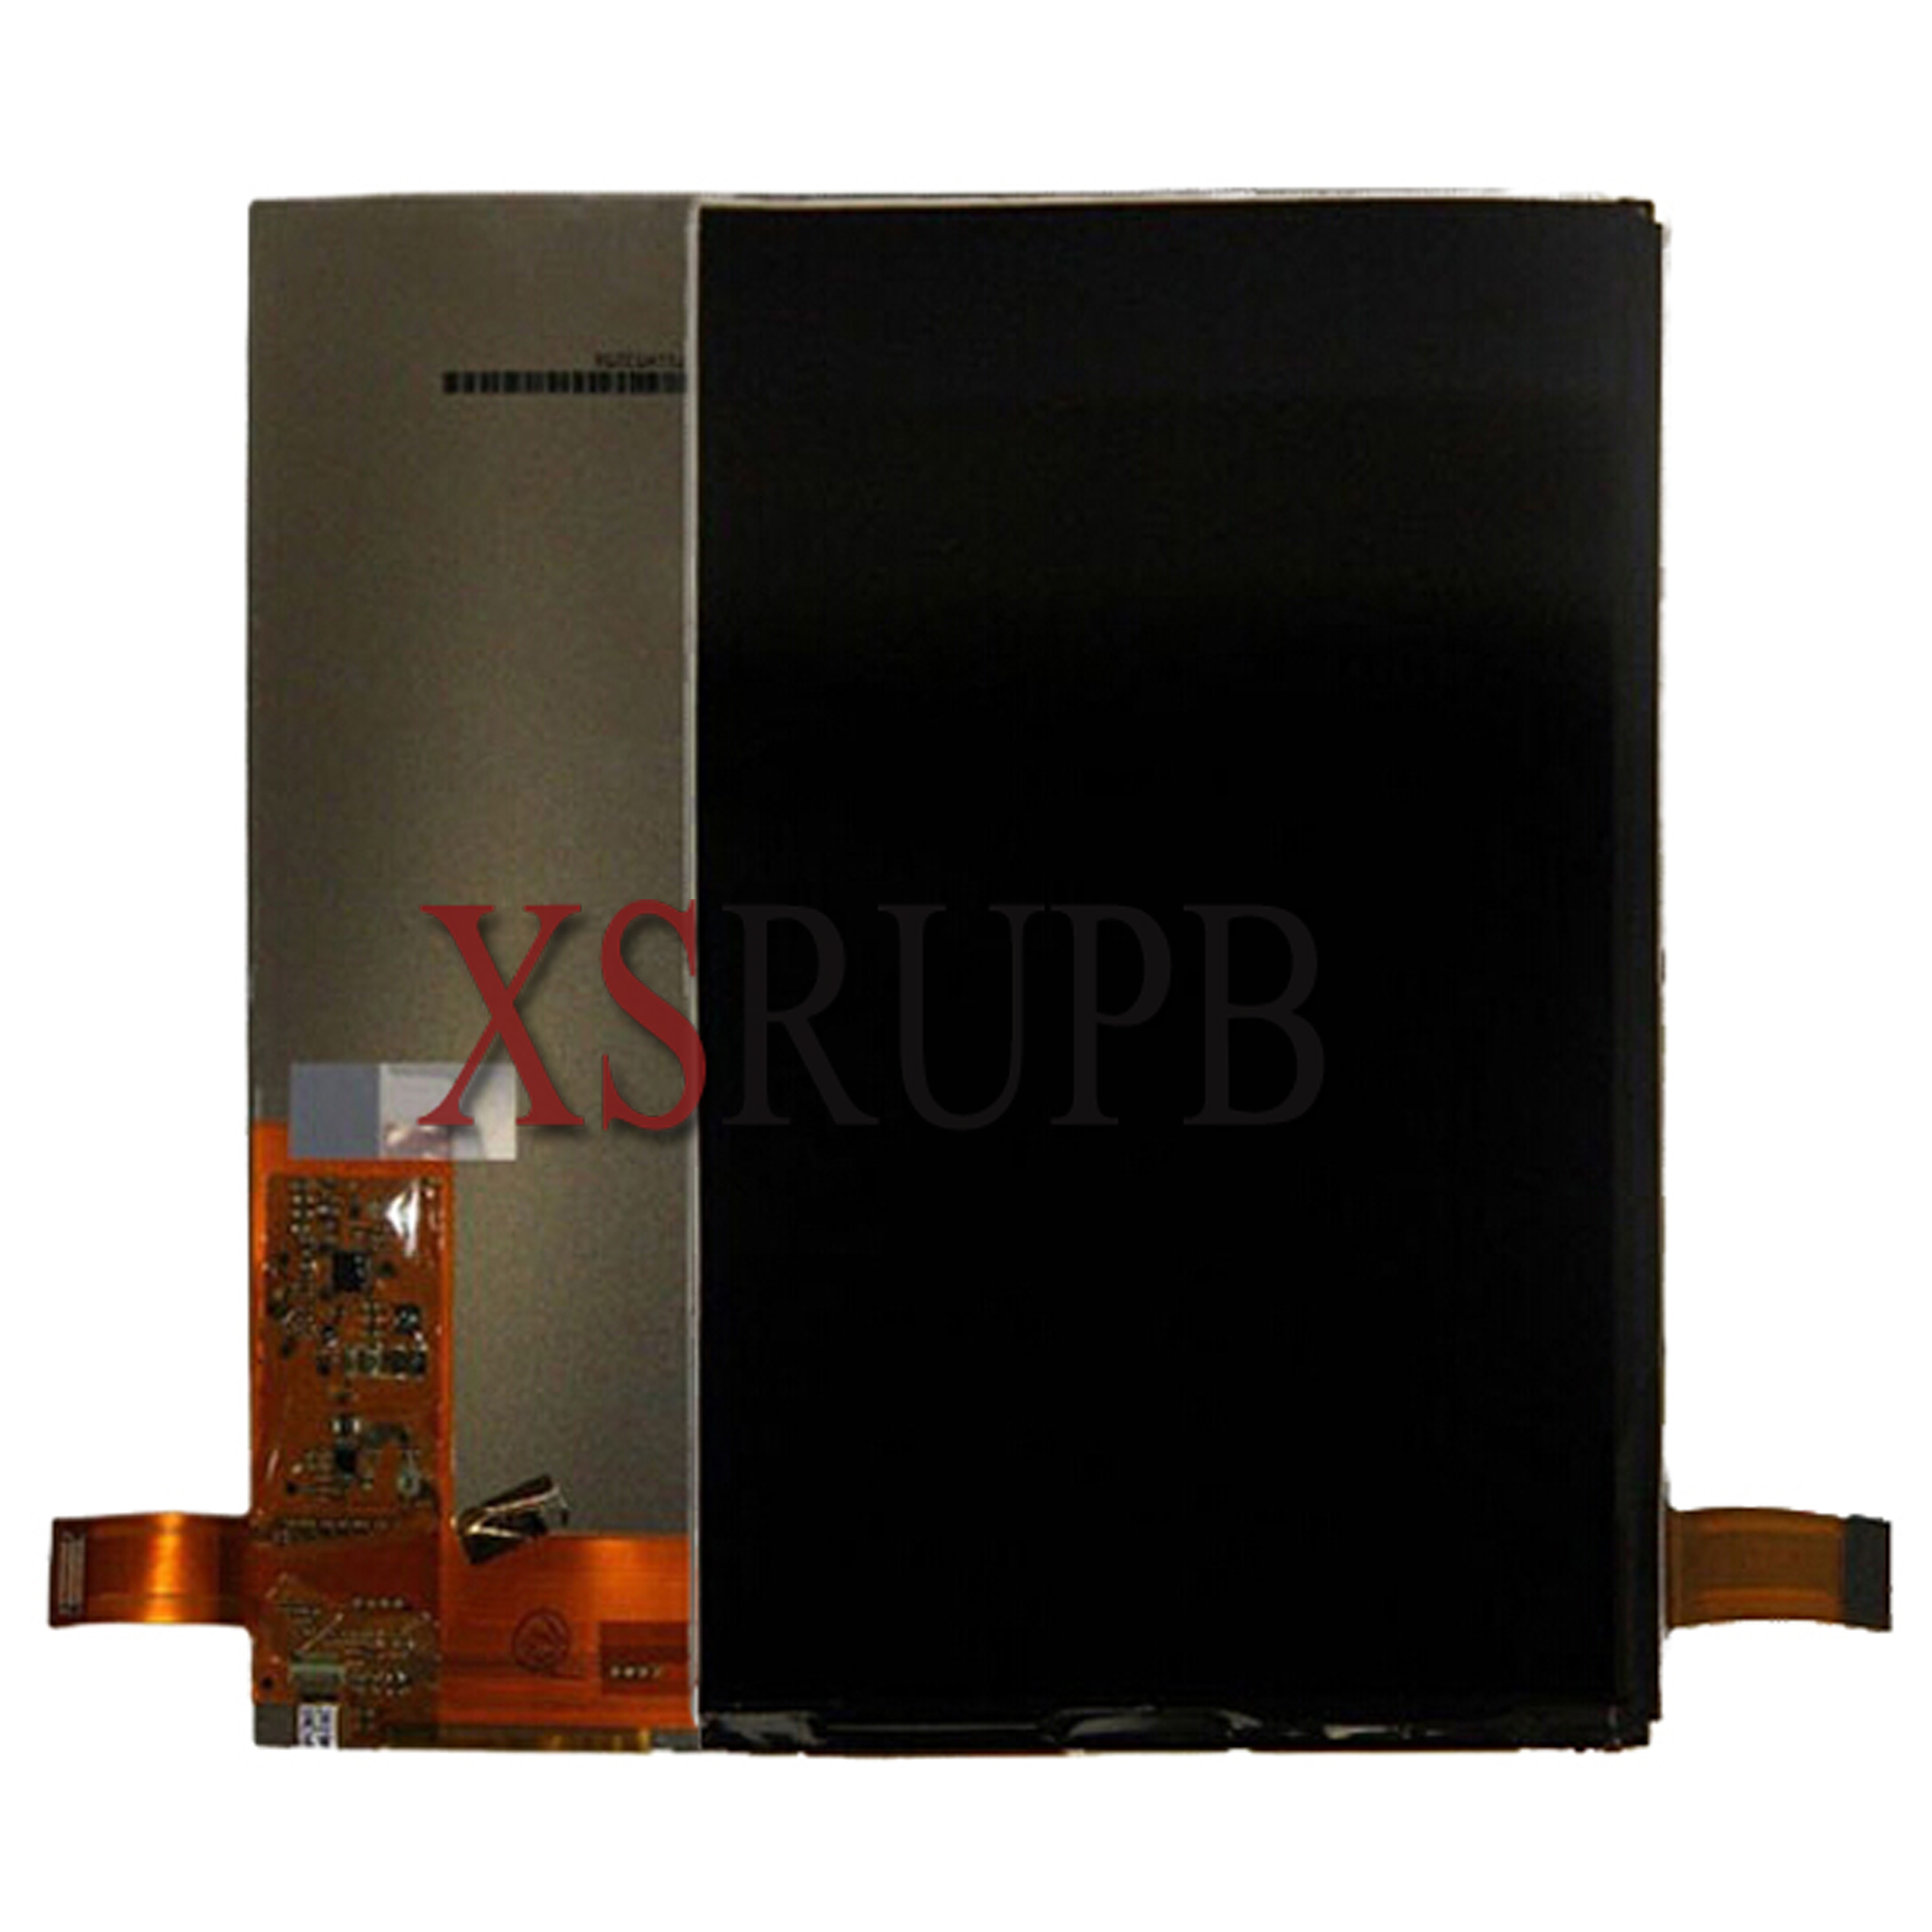 100%Original New For ASUS MeMO Pad HD 7 ME173 ME173X K00b LCD Display Screen Replacement Parts Free Shipping for asus memo pad hd 7 me173x me173 k00b fpc 076c3 0716a hmfs touch screen digitizer in stock